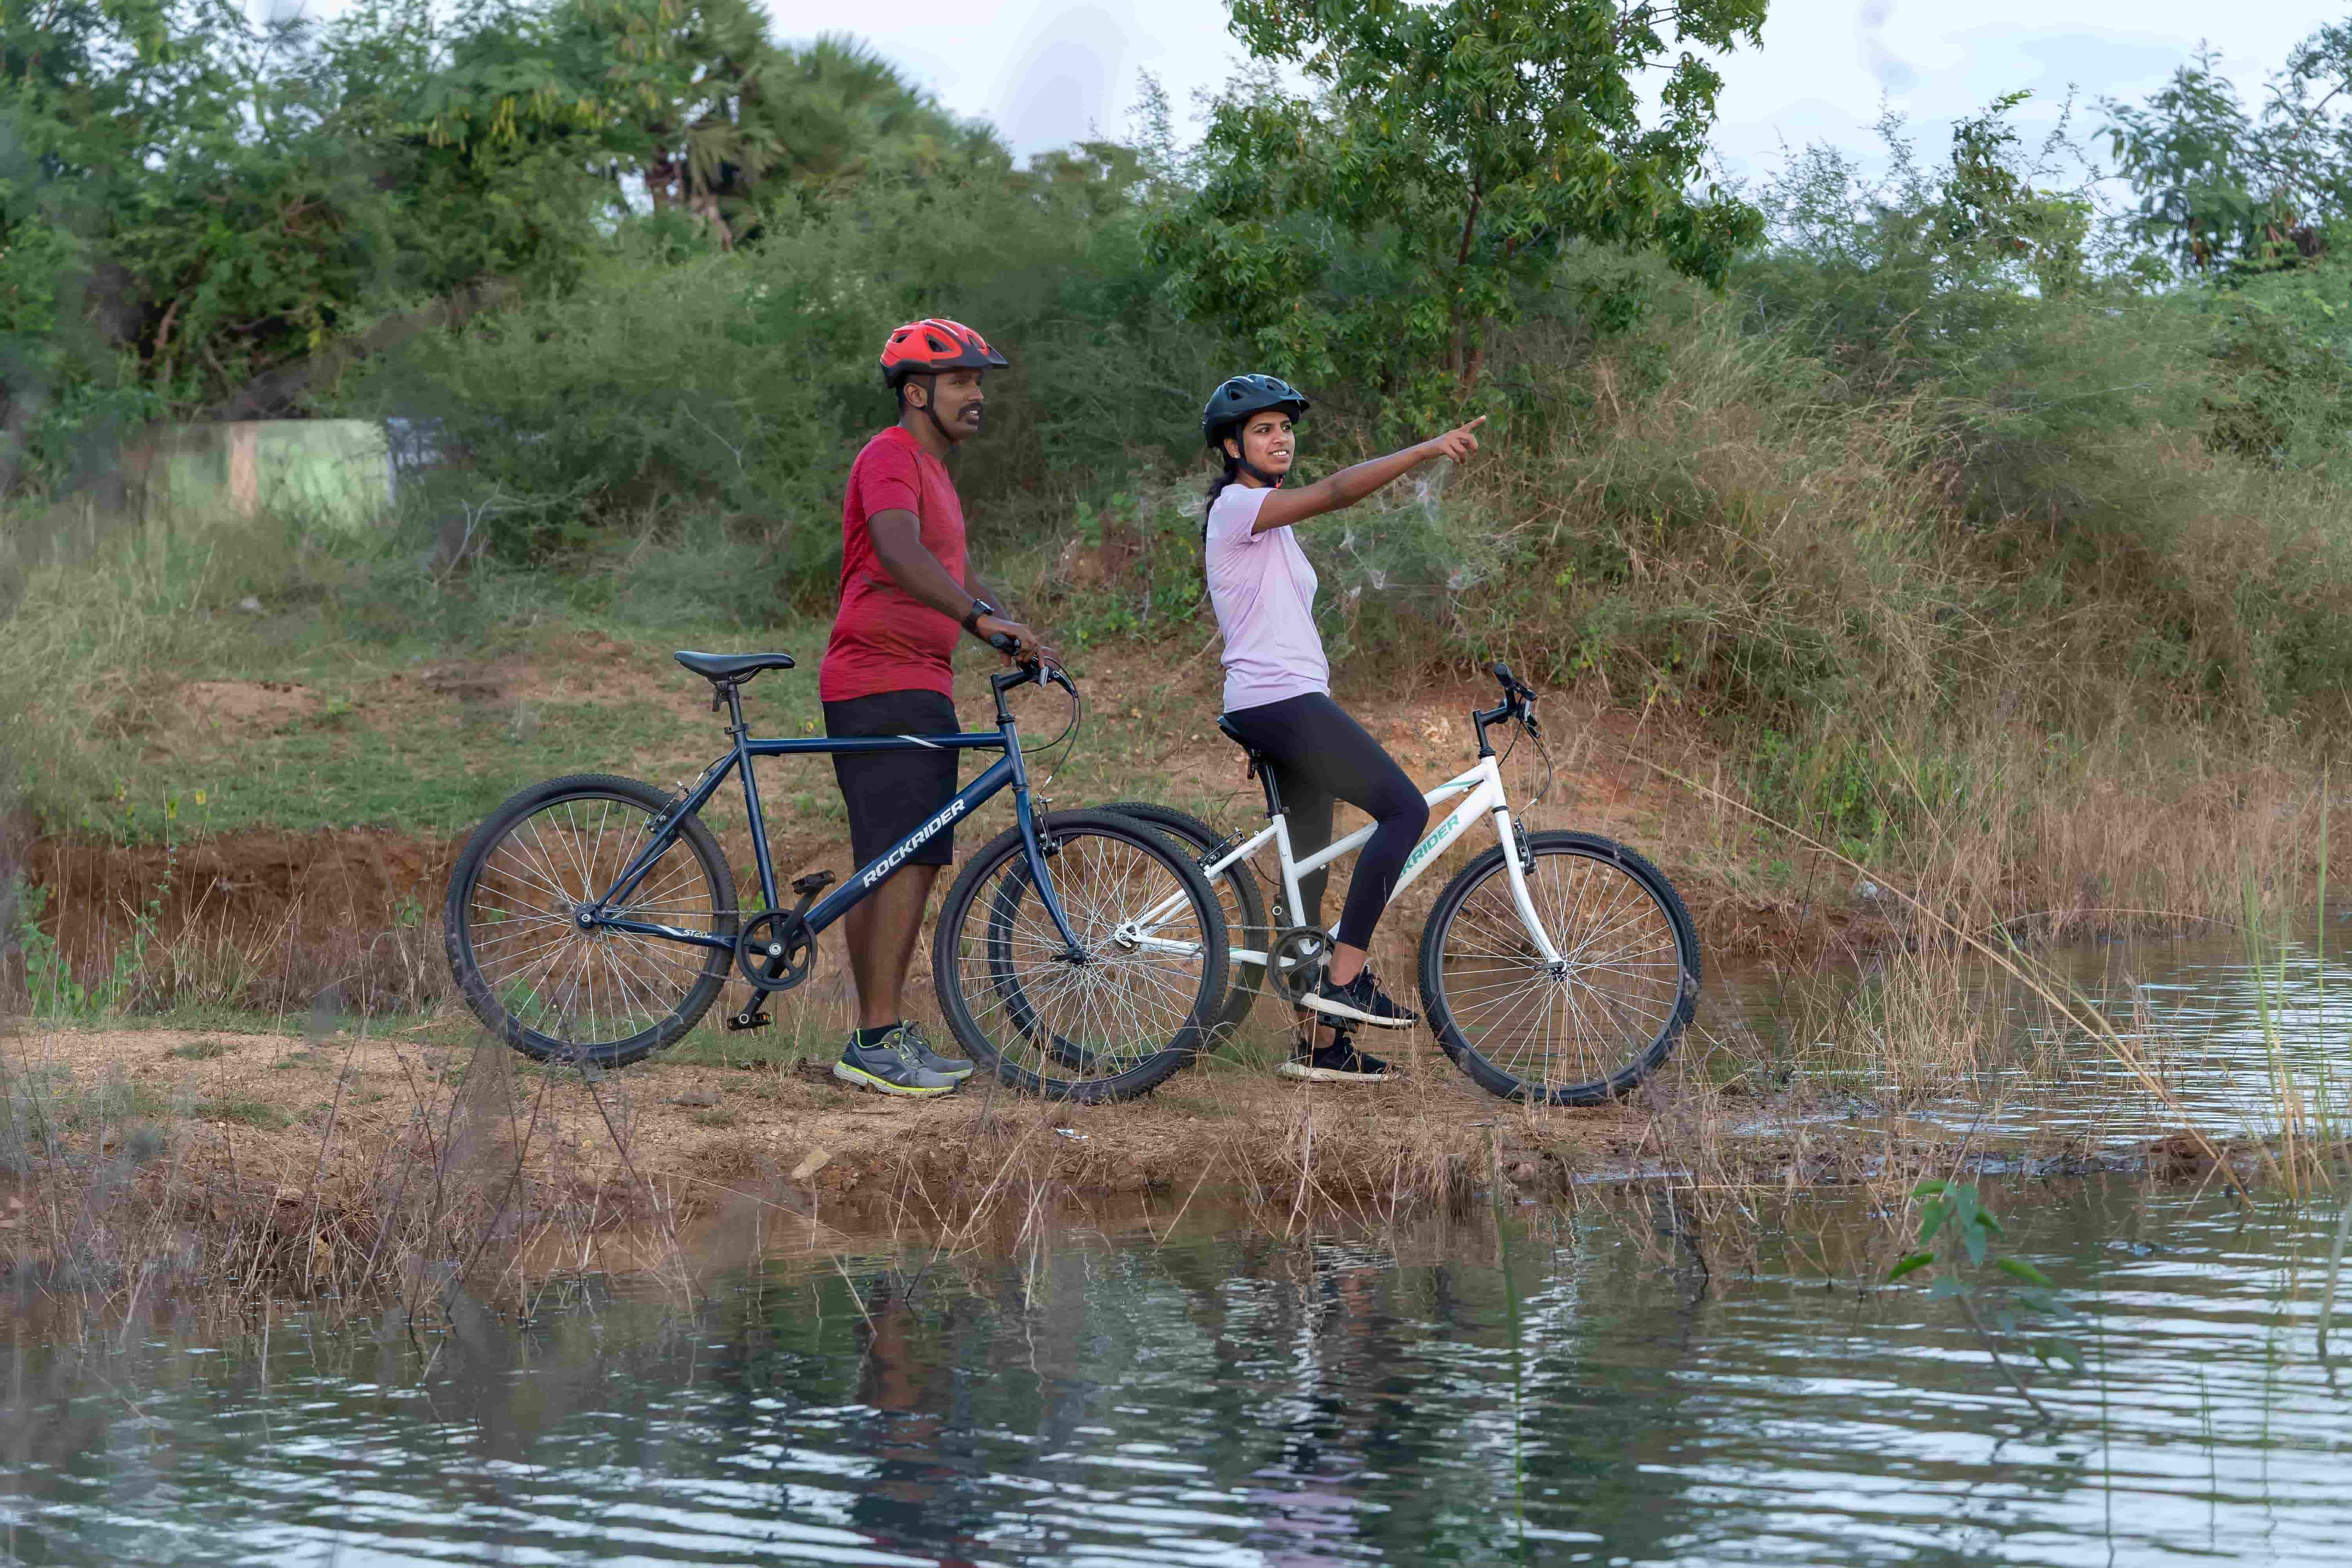 Ride with Dad: A Nice Family Mountain Bike Getaway